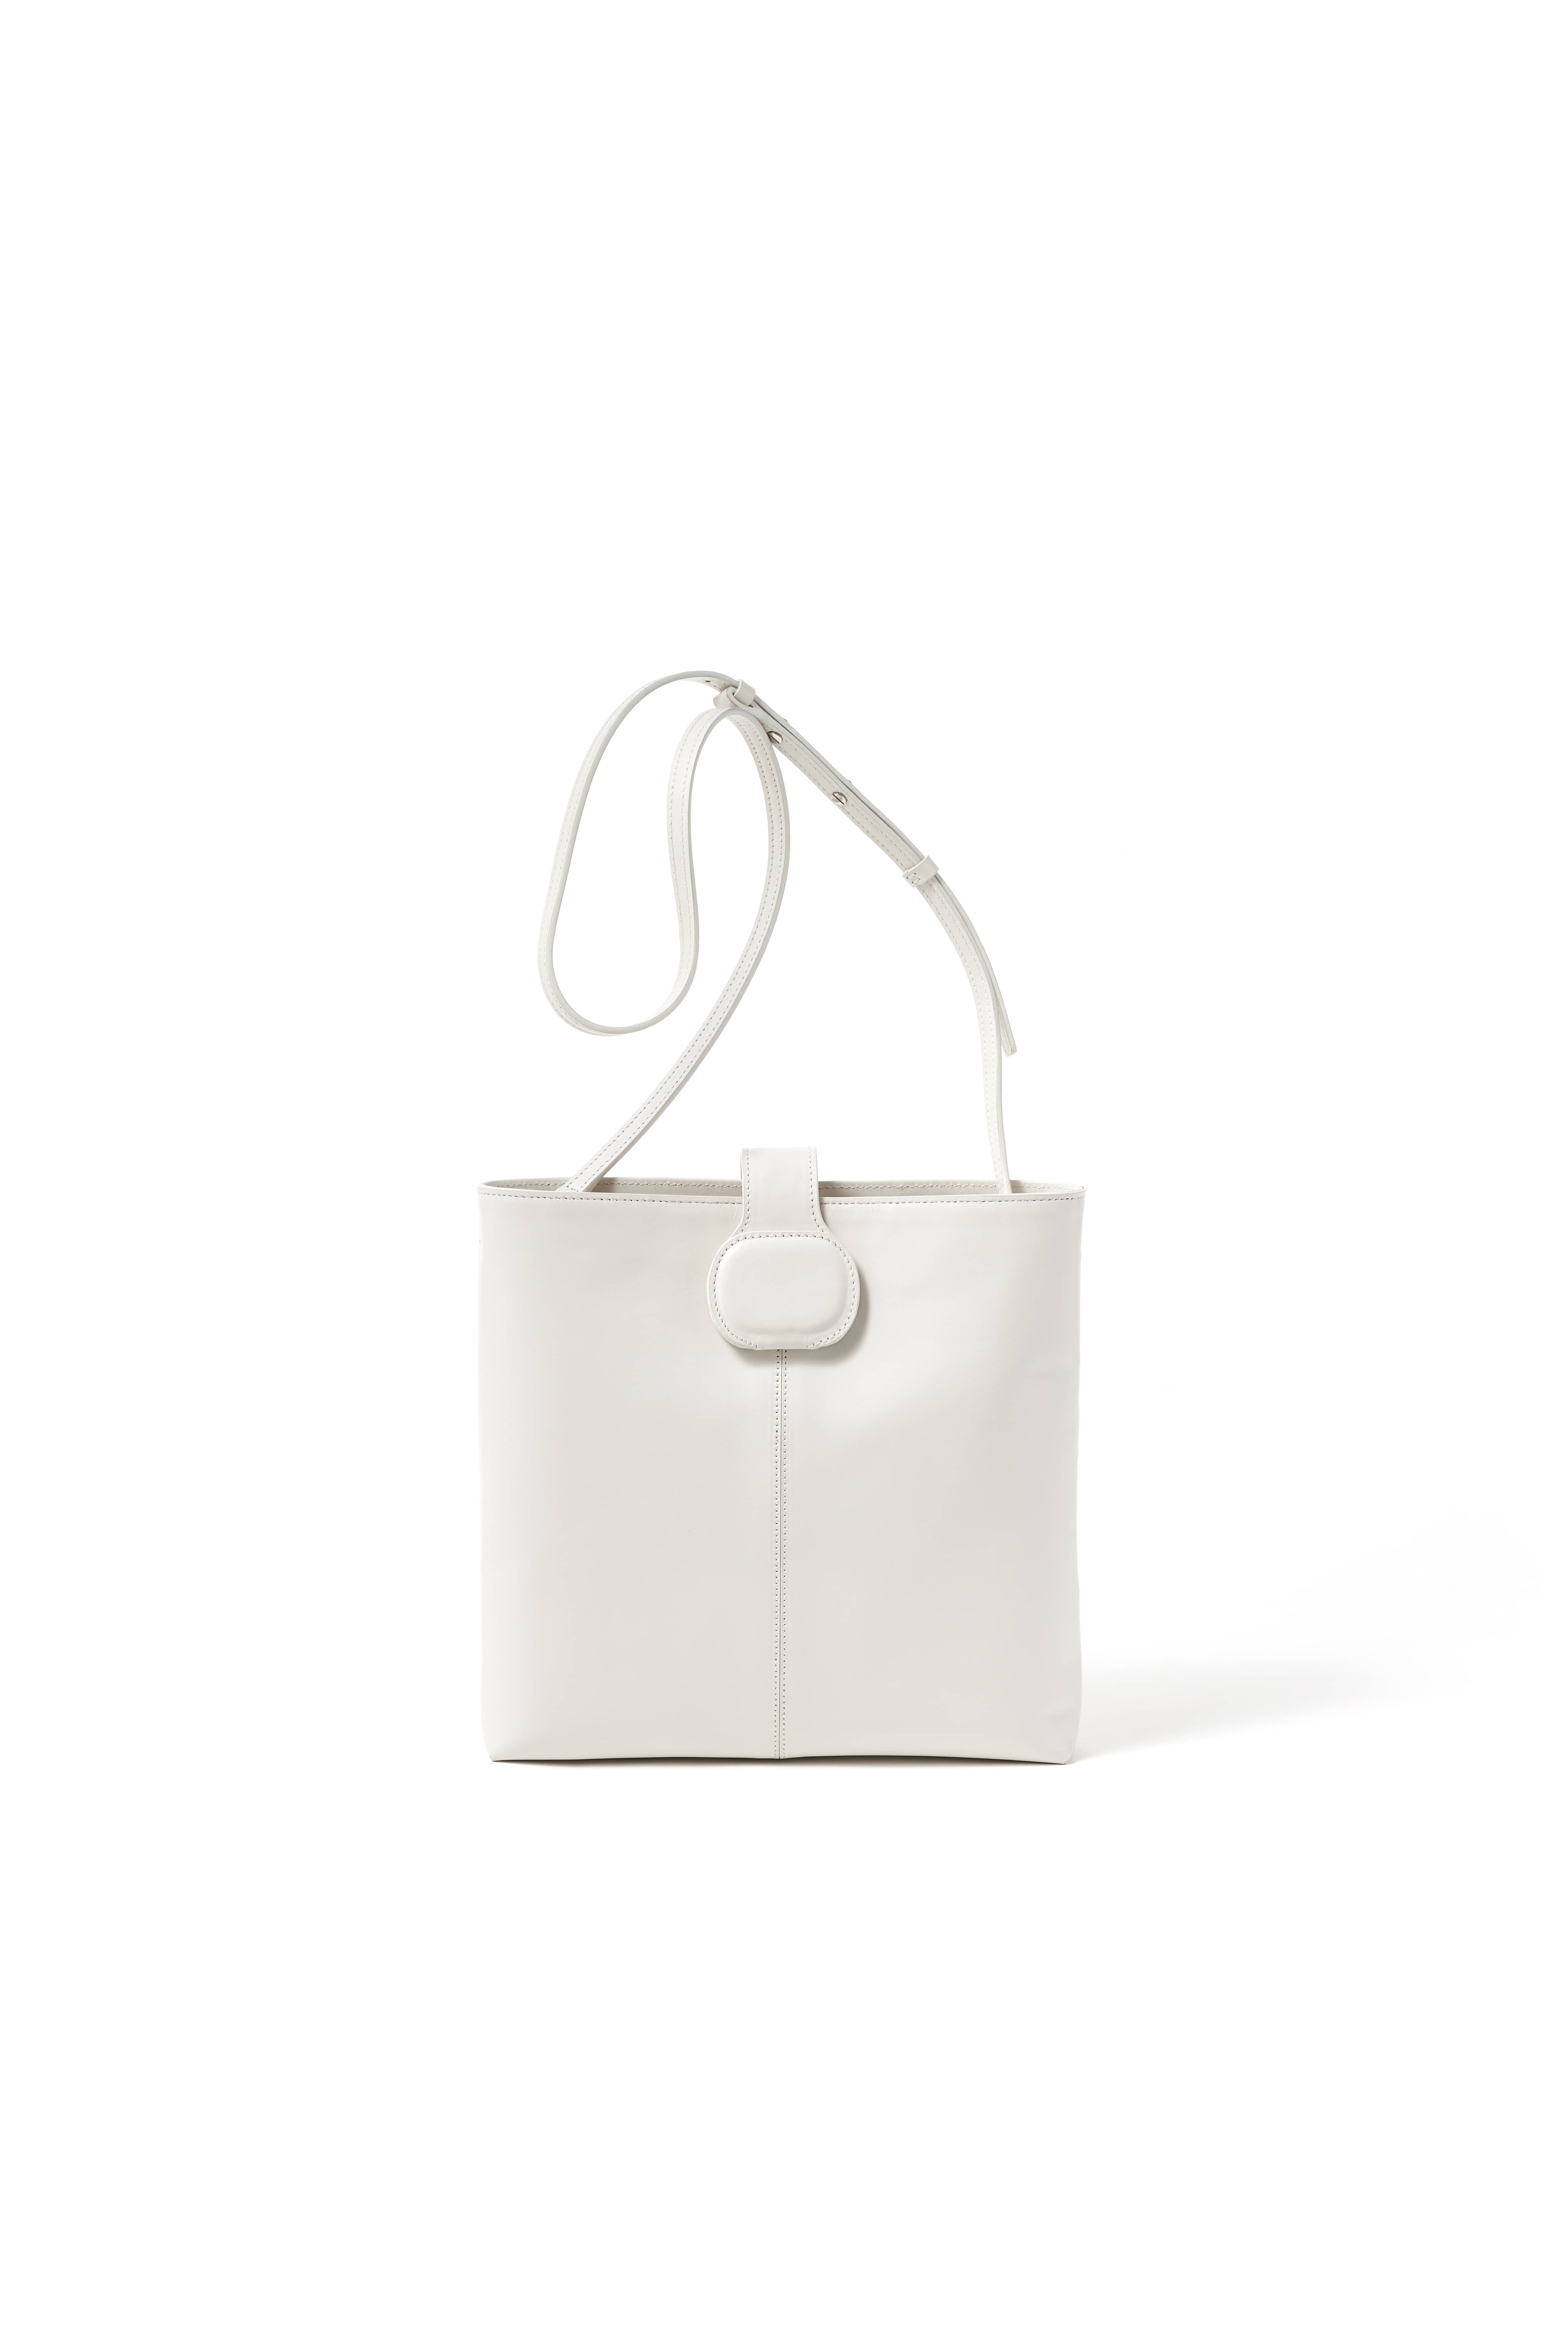 [SS20] EGGSHELL MIRROR CROSS BODY BAG_OFF WHITE